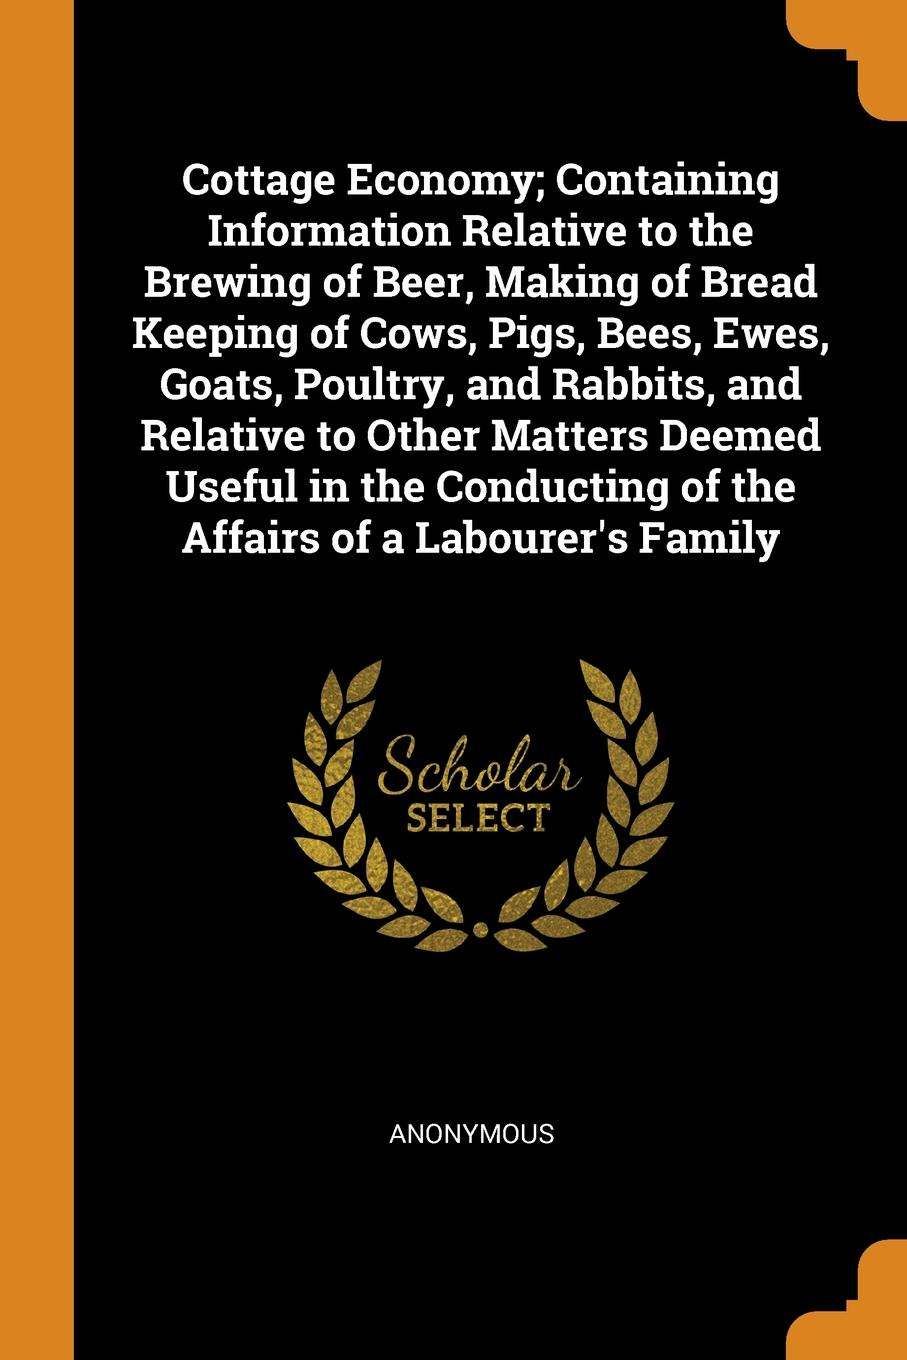 M. l'abbé Trochon Cottage Economy; Containing Information Relative to the Brewing of Beer, Making of Bread Keeping of Cows, Pigs, Bees, Ewes, Goats, Poultry, and Rabbits, and Relative to Other Matters Deemed Useful in the Conducting of the Affairs of a Labourer's F... alan thompson keeping poultry and rabbits on scraps